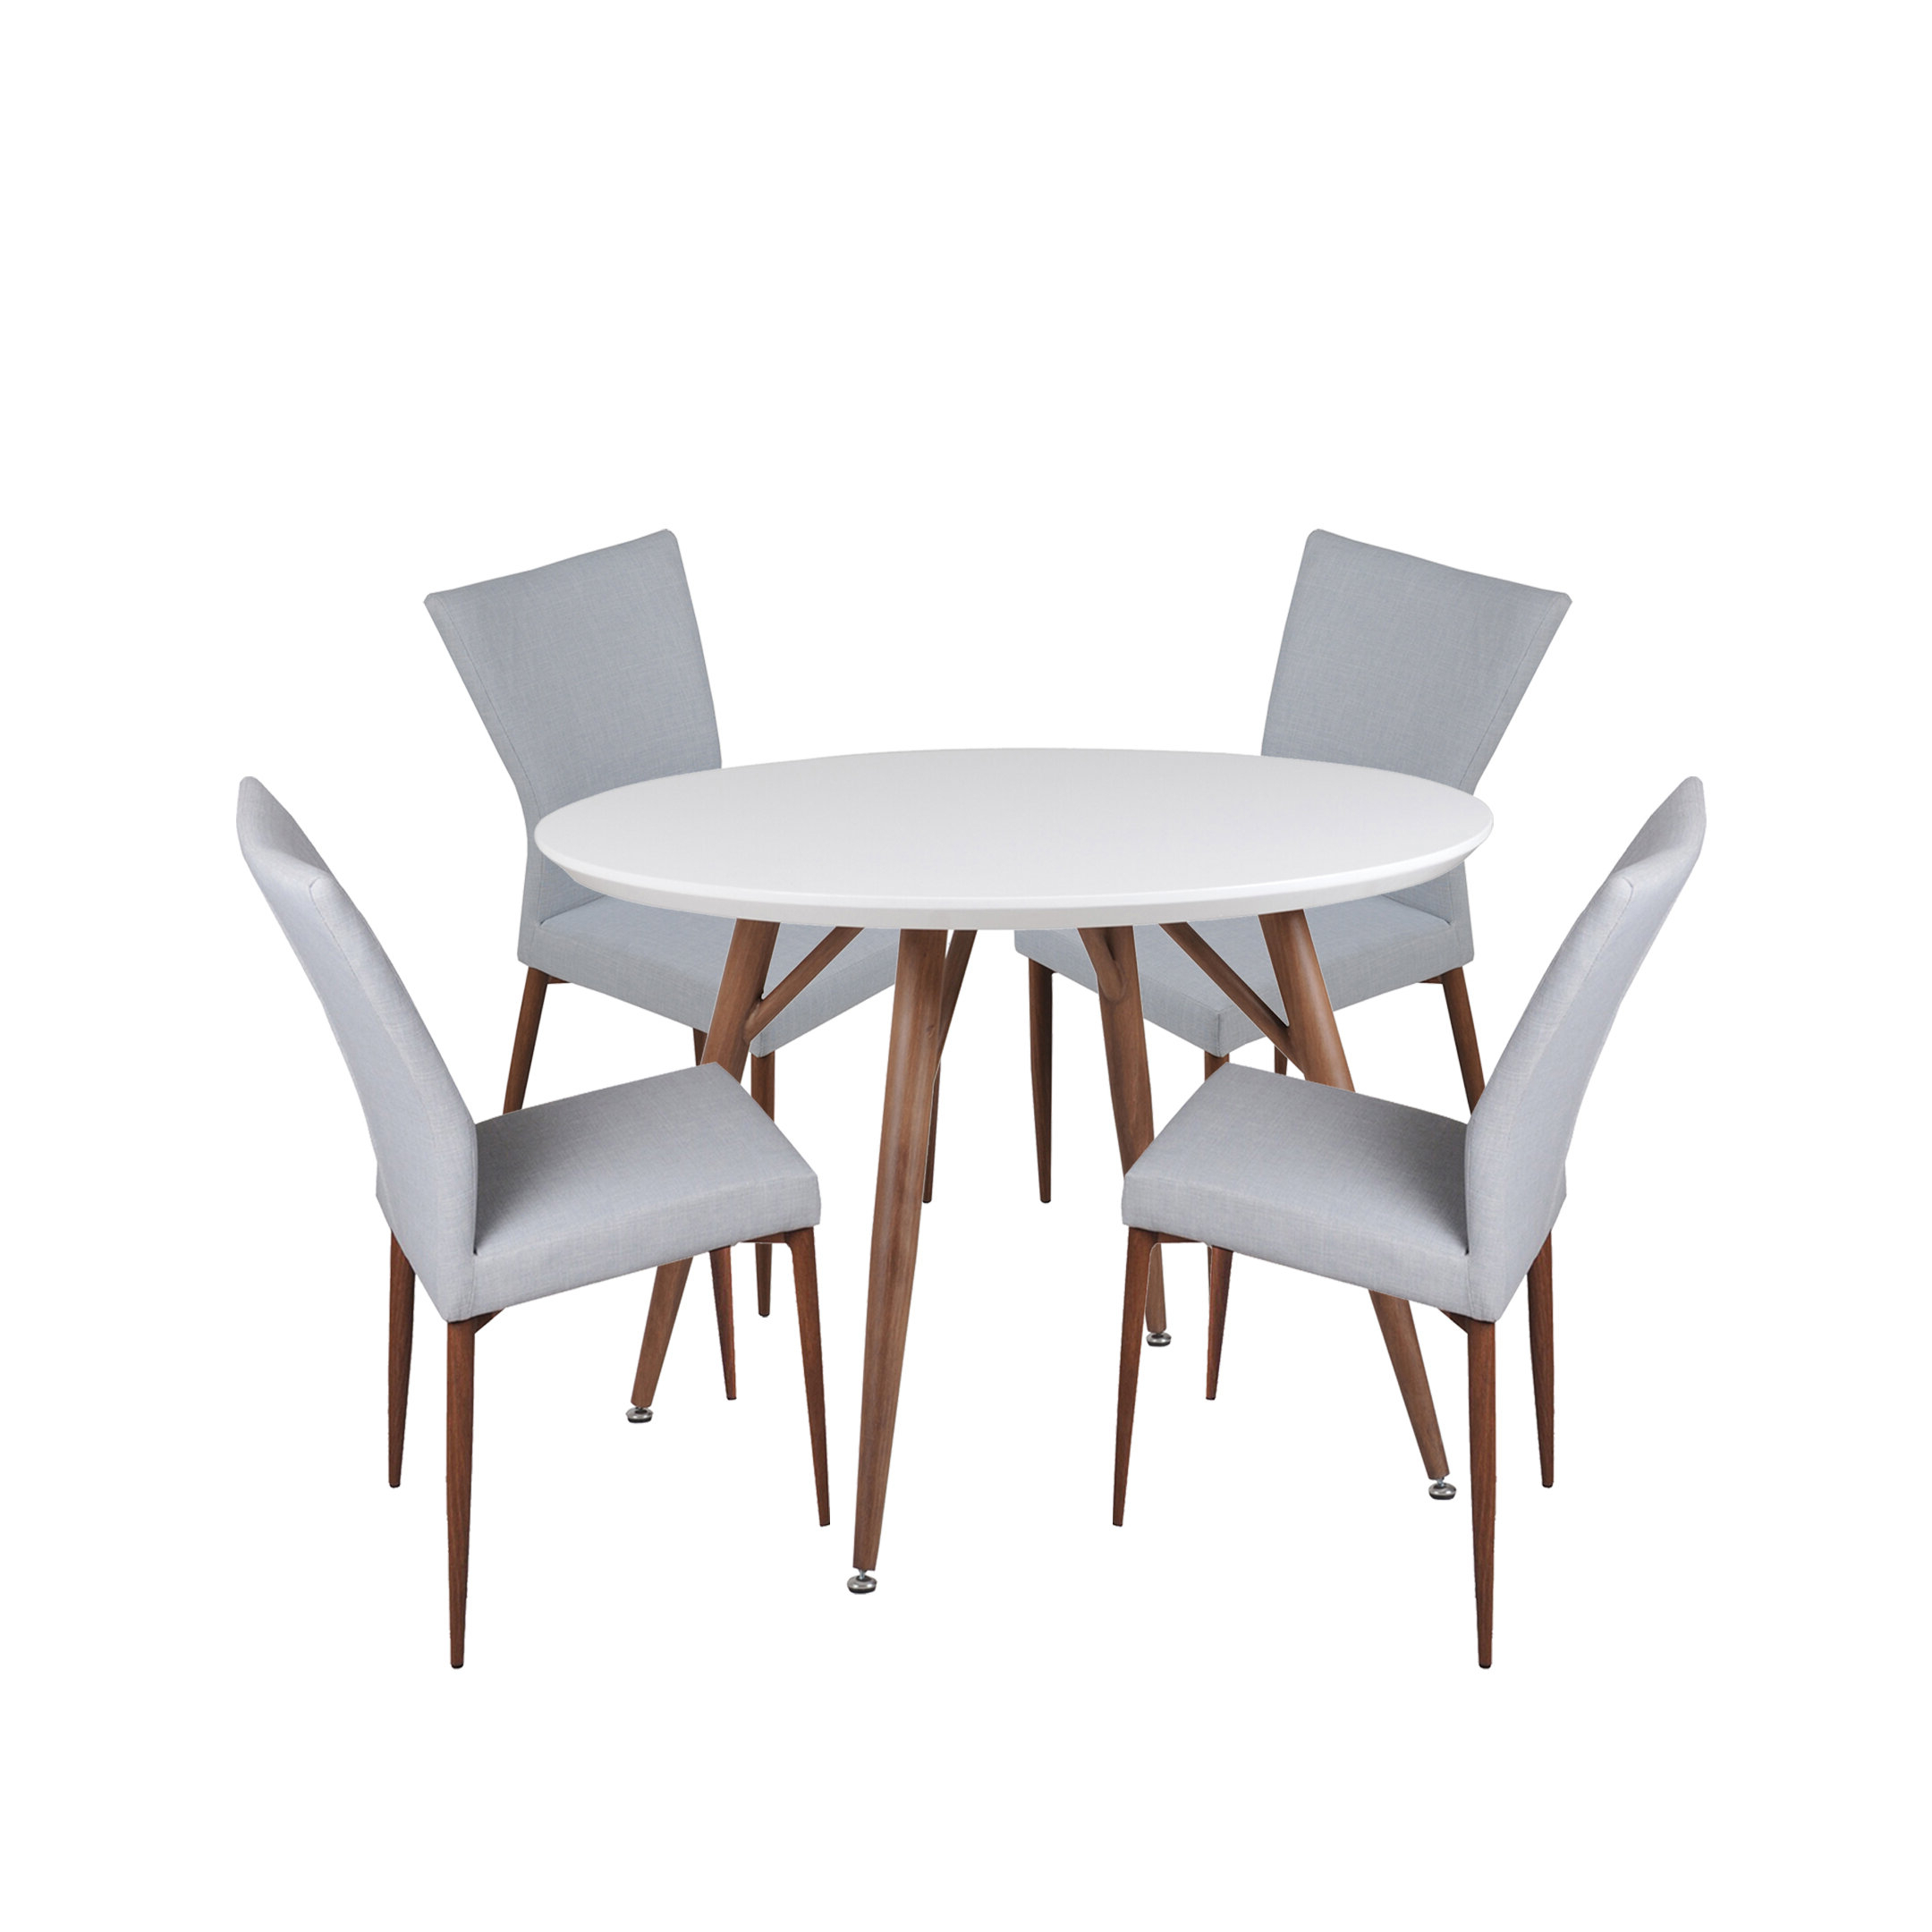 Preferred 5 Piece Breakfast Nook Dining Sets Regarding Brandyn 5 Piece Breakfast Nook Dining Set (View 15 of 20)